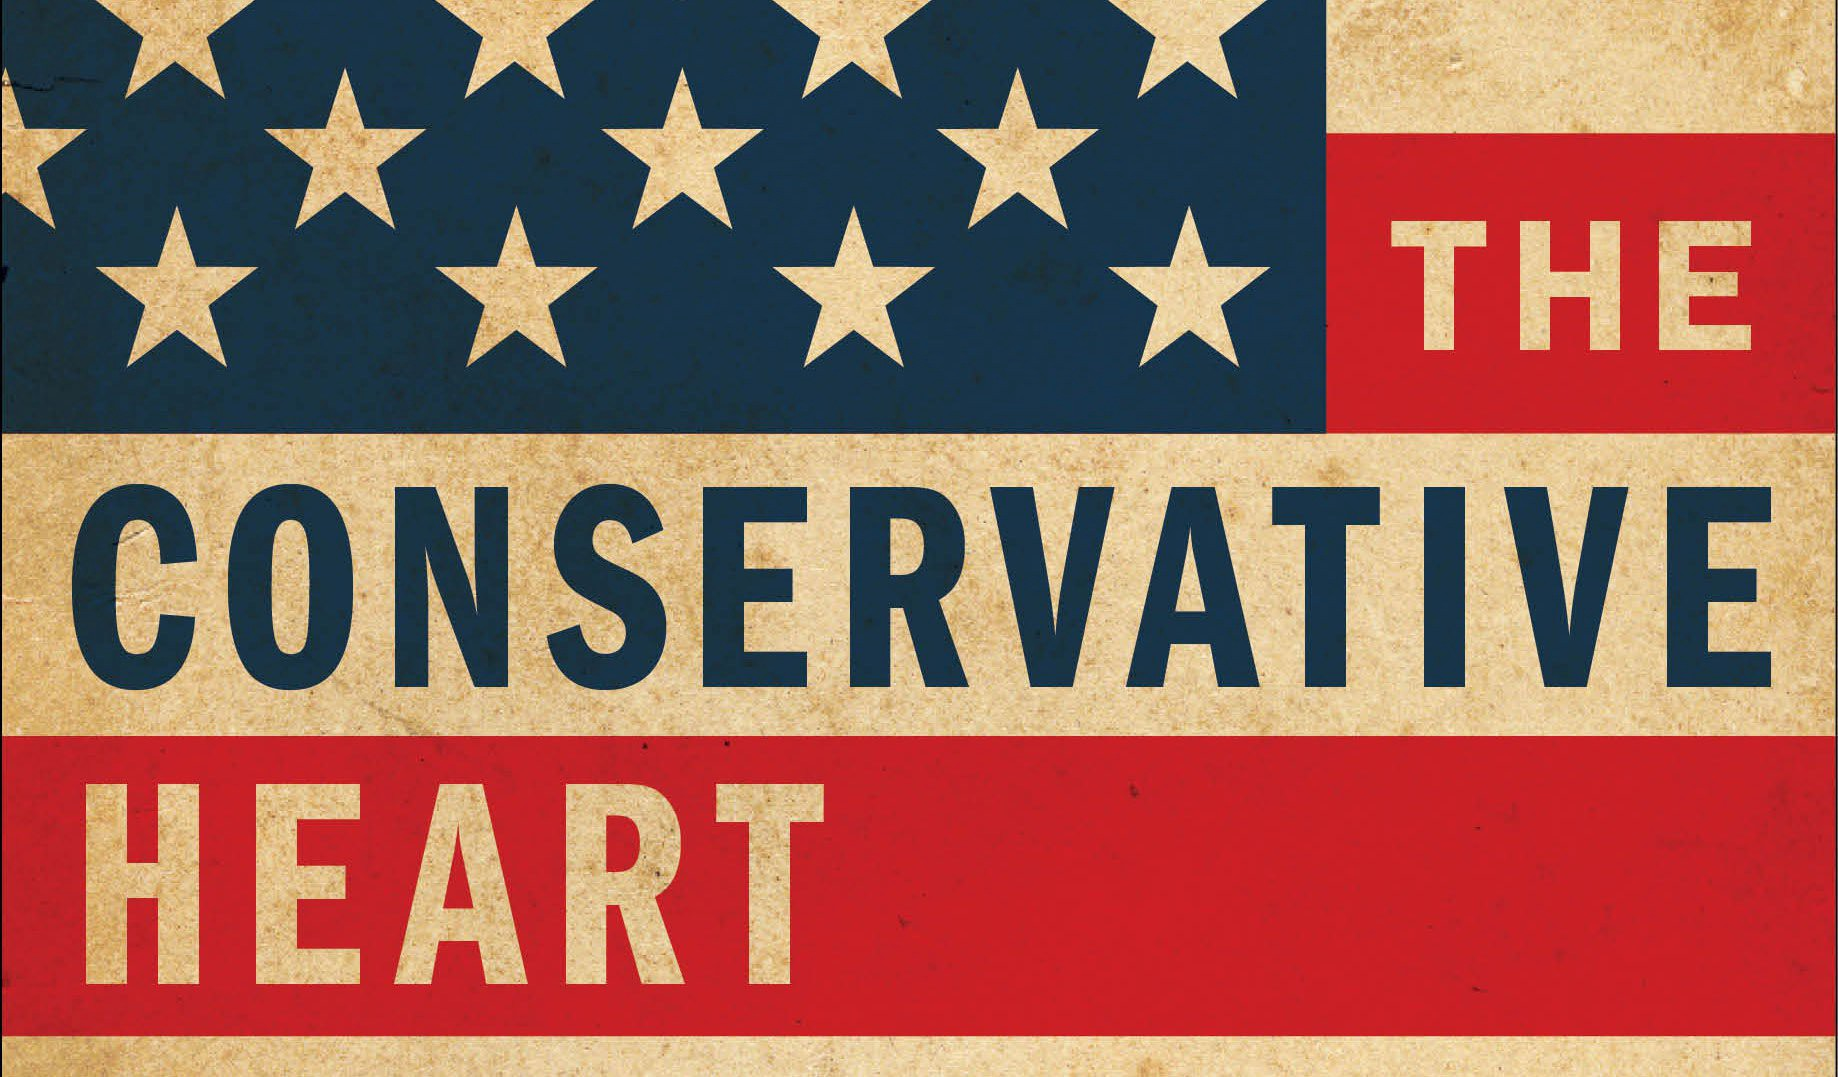 Recommended Read: Conservative Heart